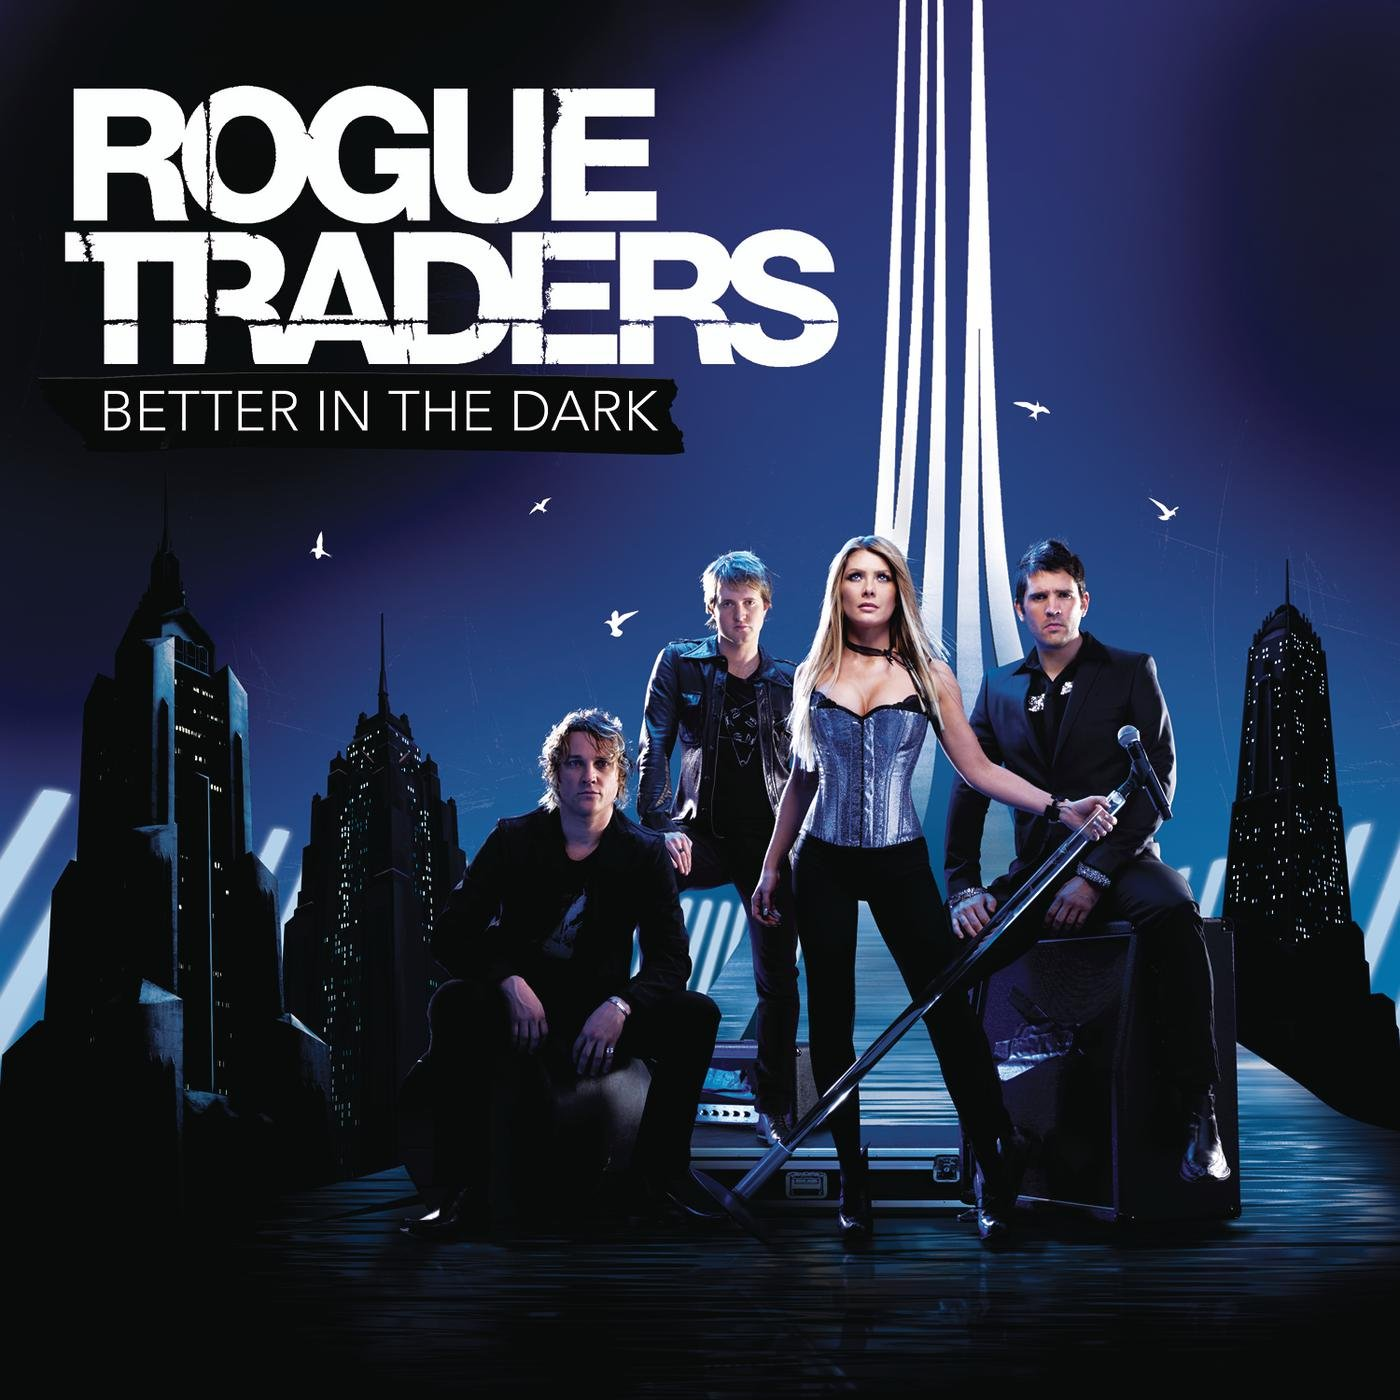 Rogue Traders – Better in The Dark (2007) [FLAC]